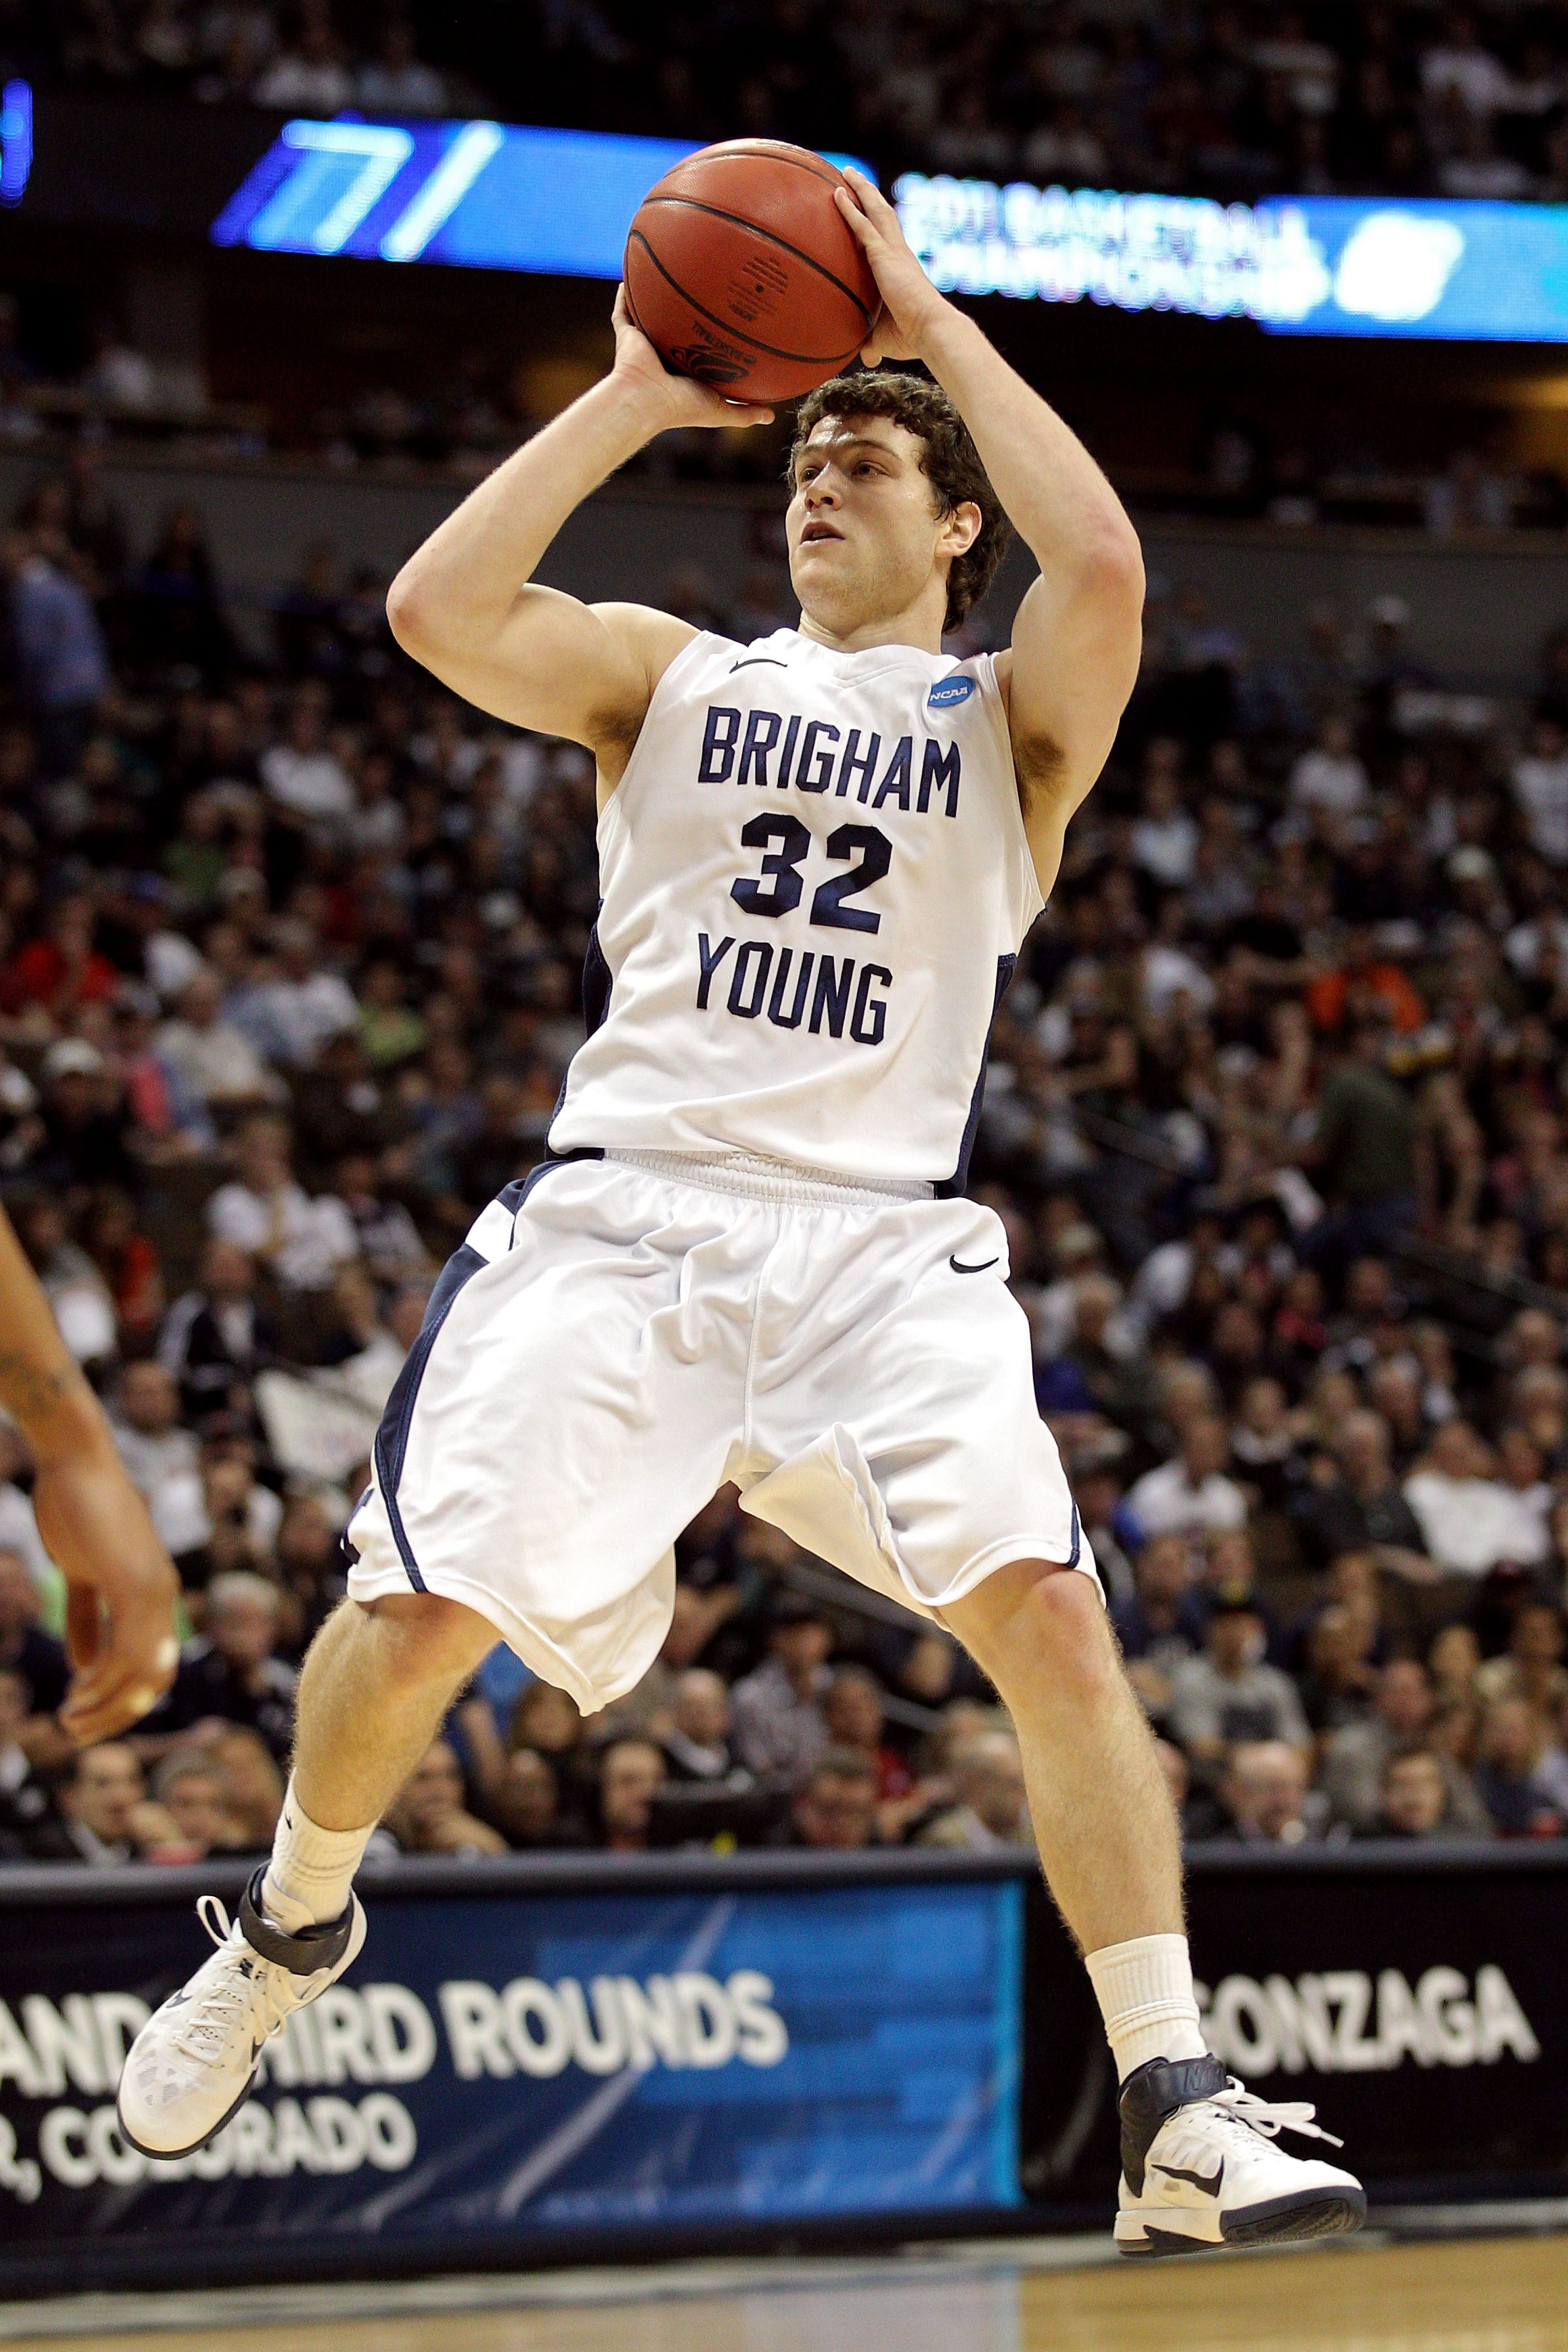 DENVER, CO - MARCH 19:  Jimmer Fredette #32 of the Brigham Young Cougars shoot against the Gonzaga Bulldogs during the third round of the 2011 NCAA men's basketball tournament at Pepsi Center on March 19, 2011 in Denver, Colorado.  (Photo by Justin Edmond